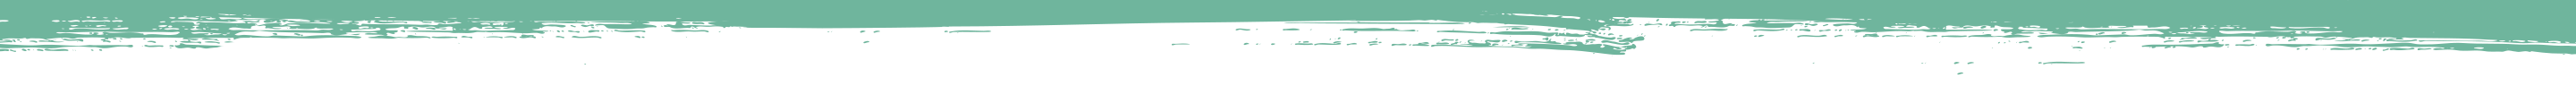 Beyond - Rough Divider Teal to Clear